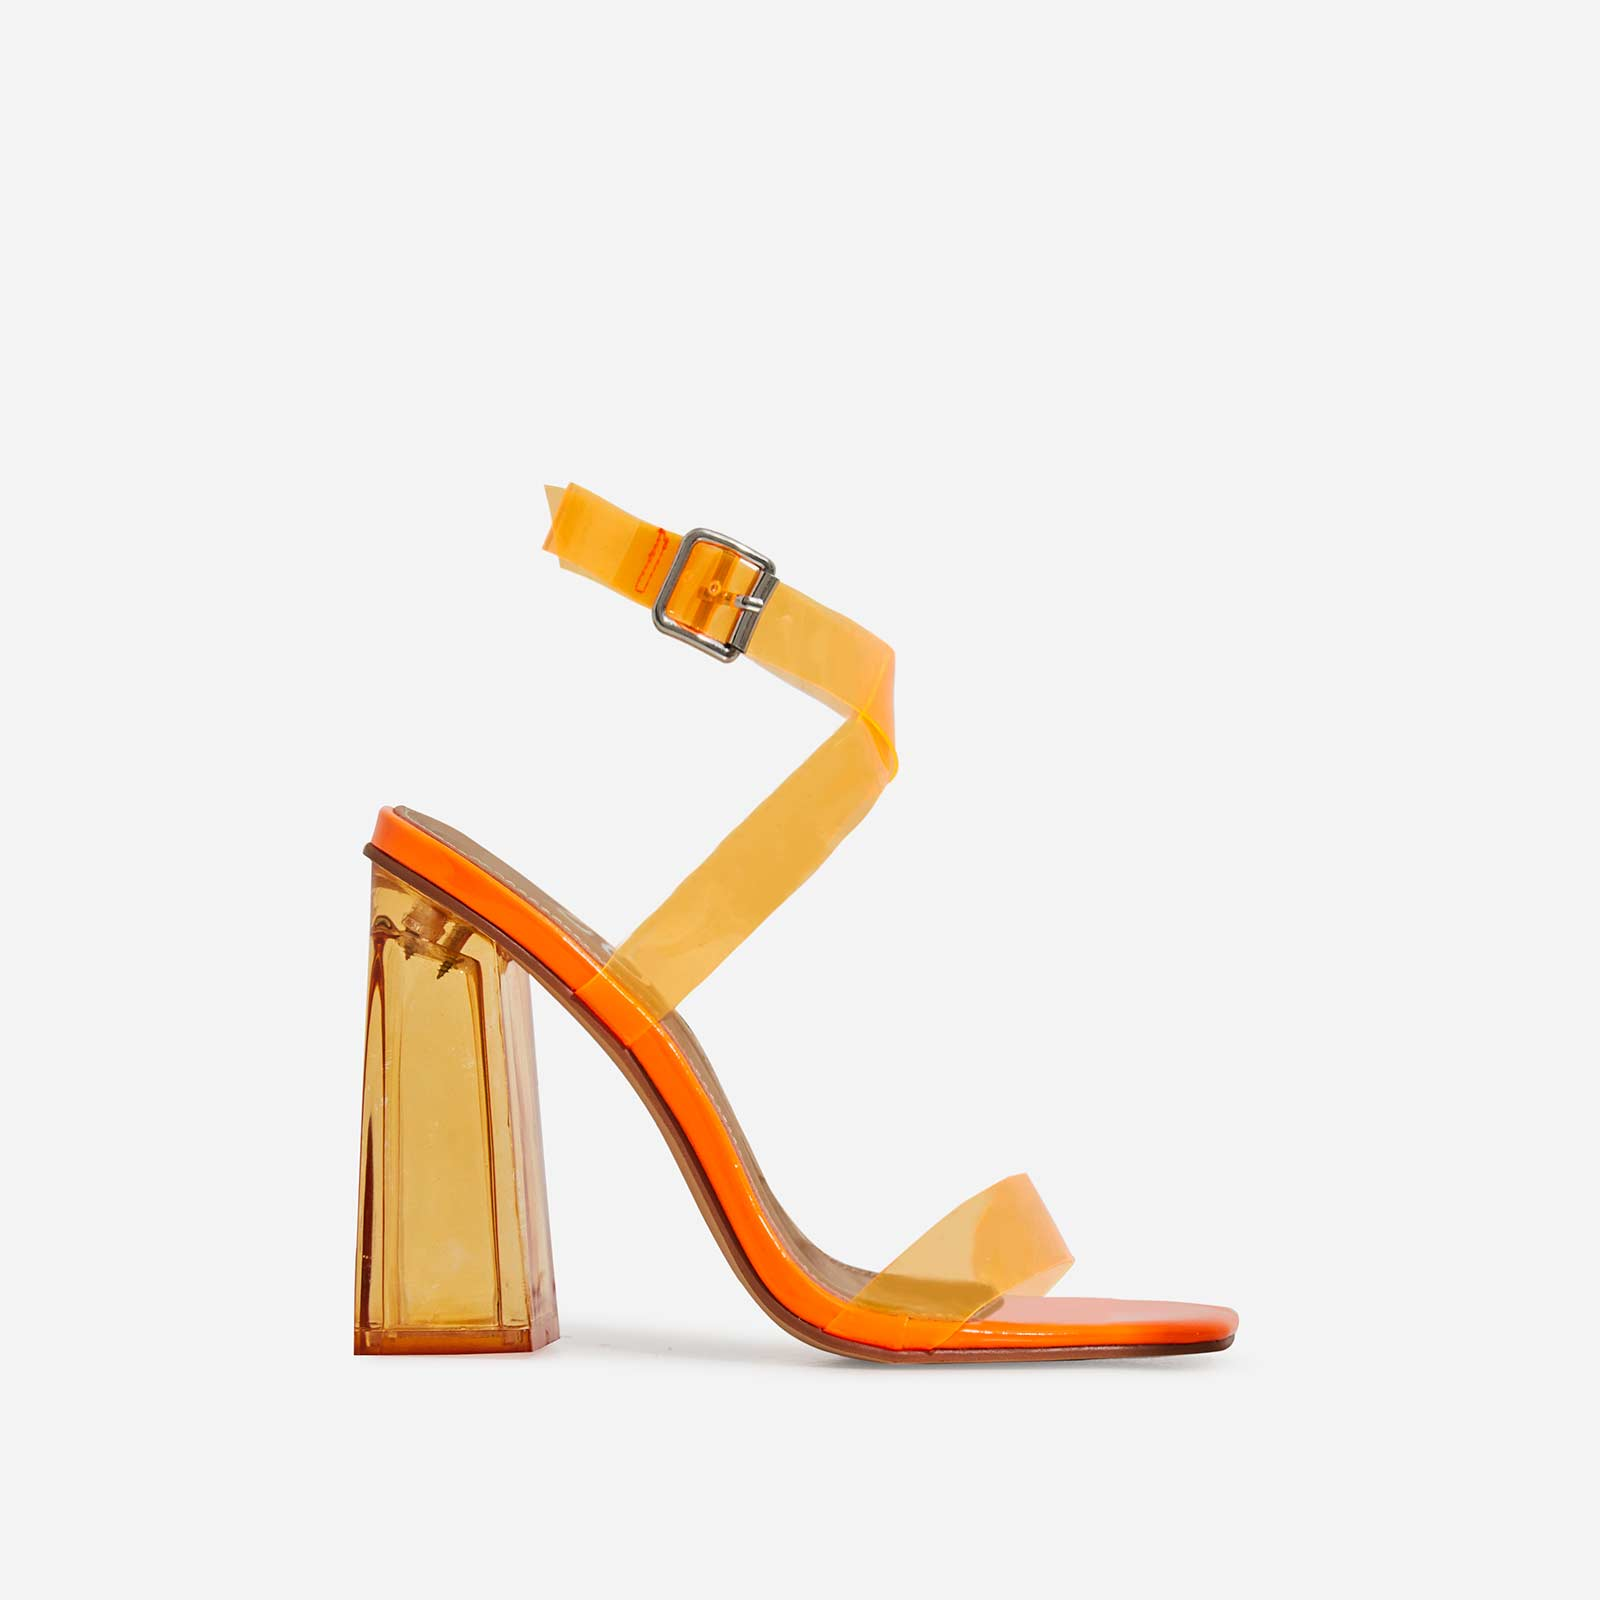 Saint Square Toe Perspex Flared Block Heel In Orange Patent